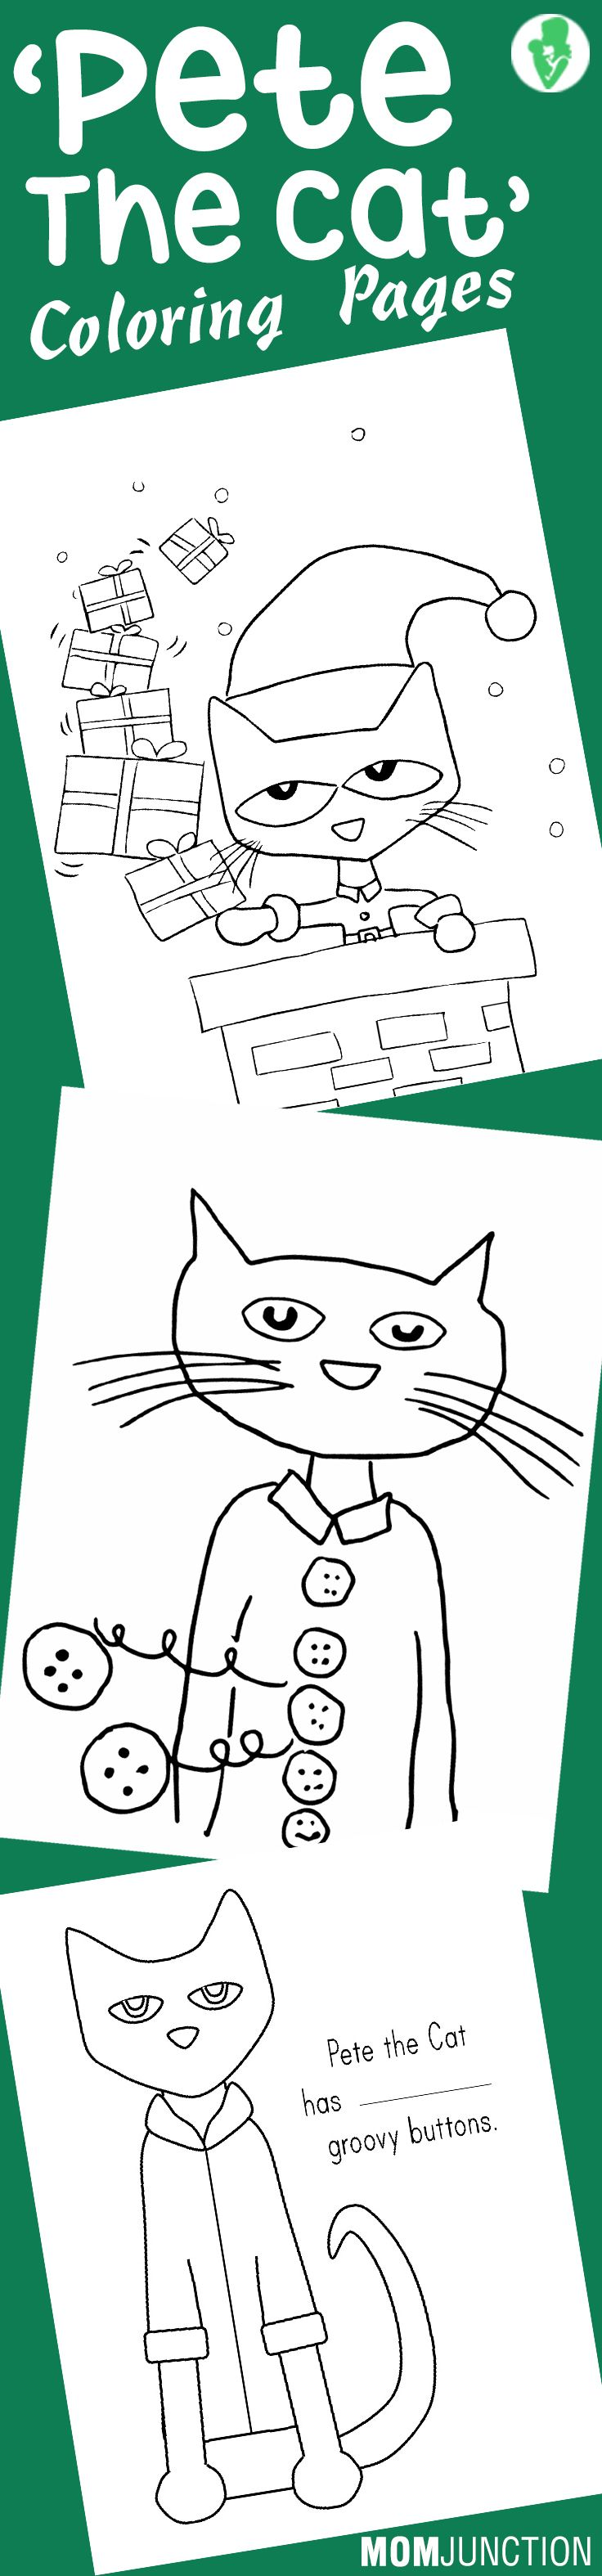 top 20 free printable pete the cat coloring pages online cat